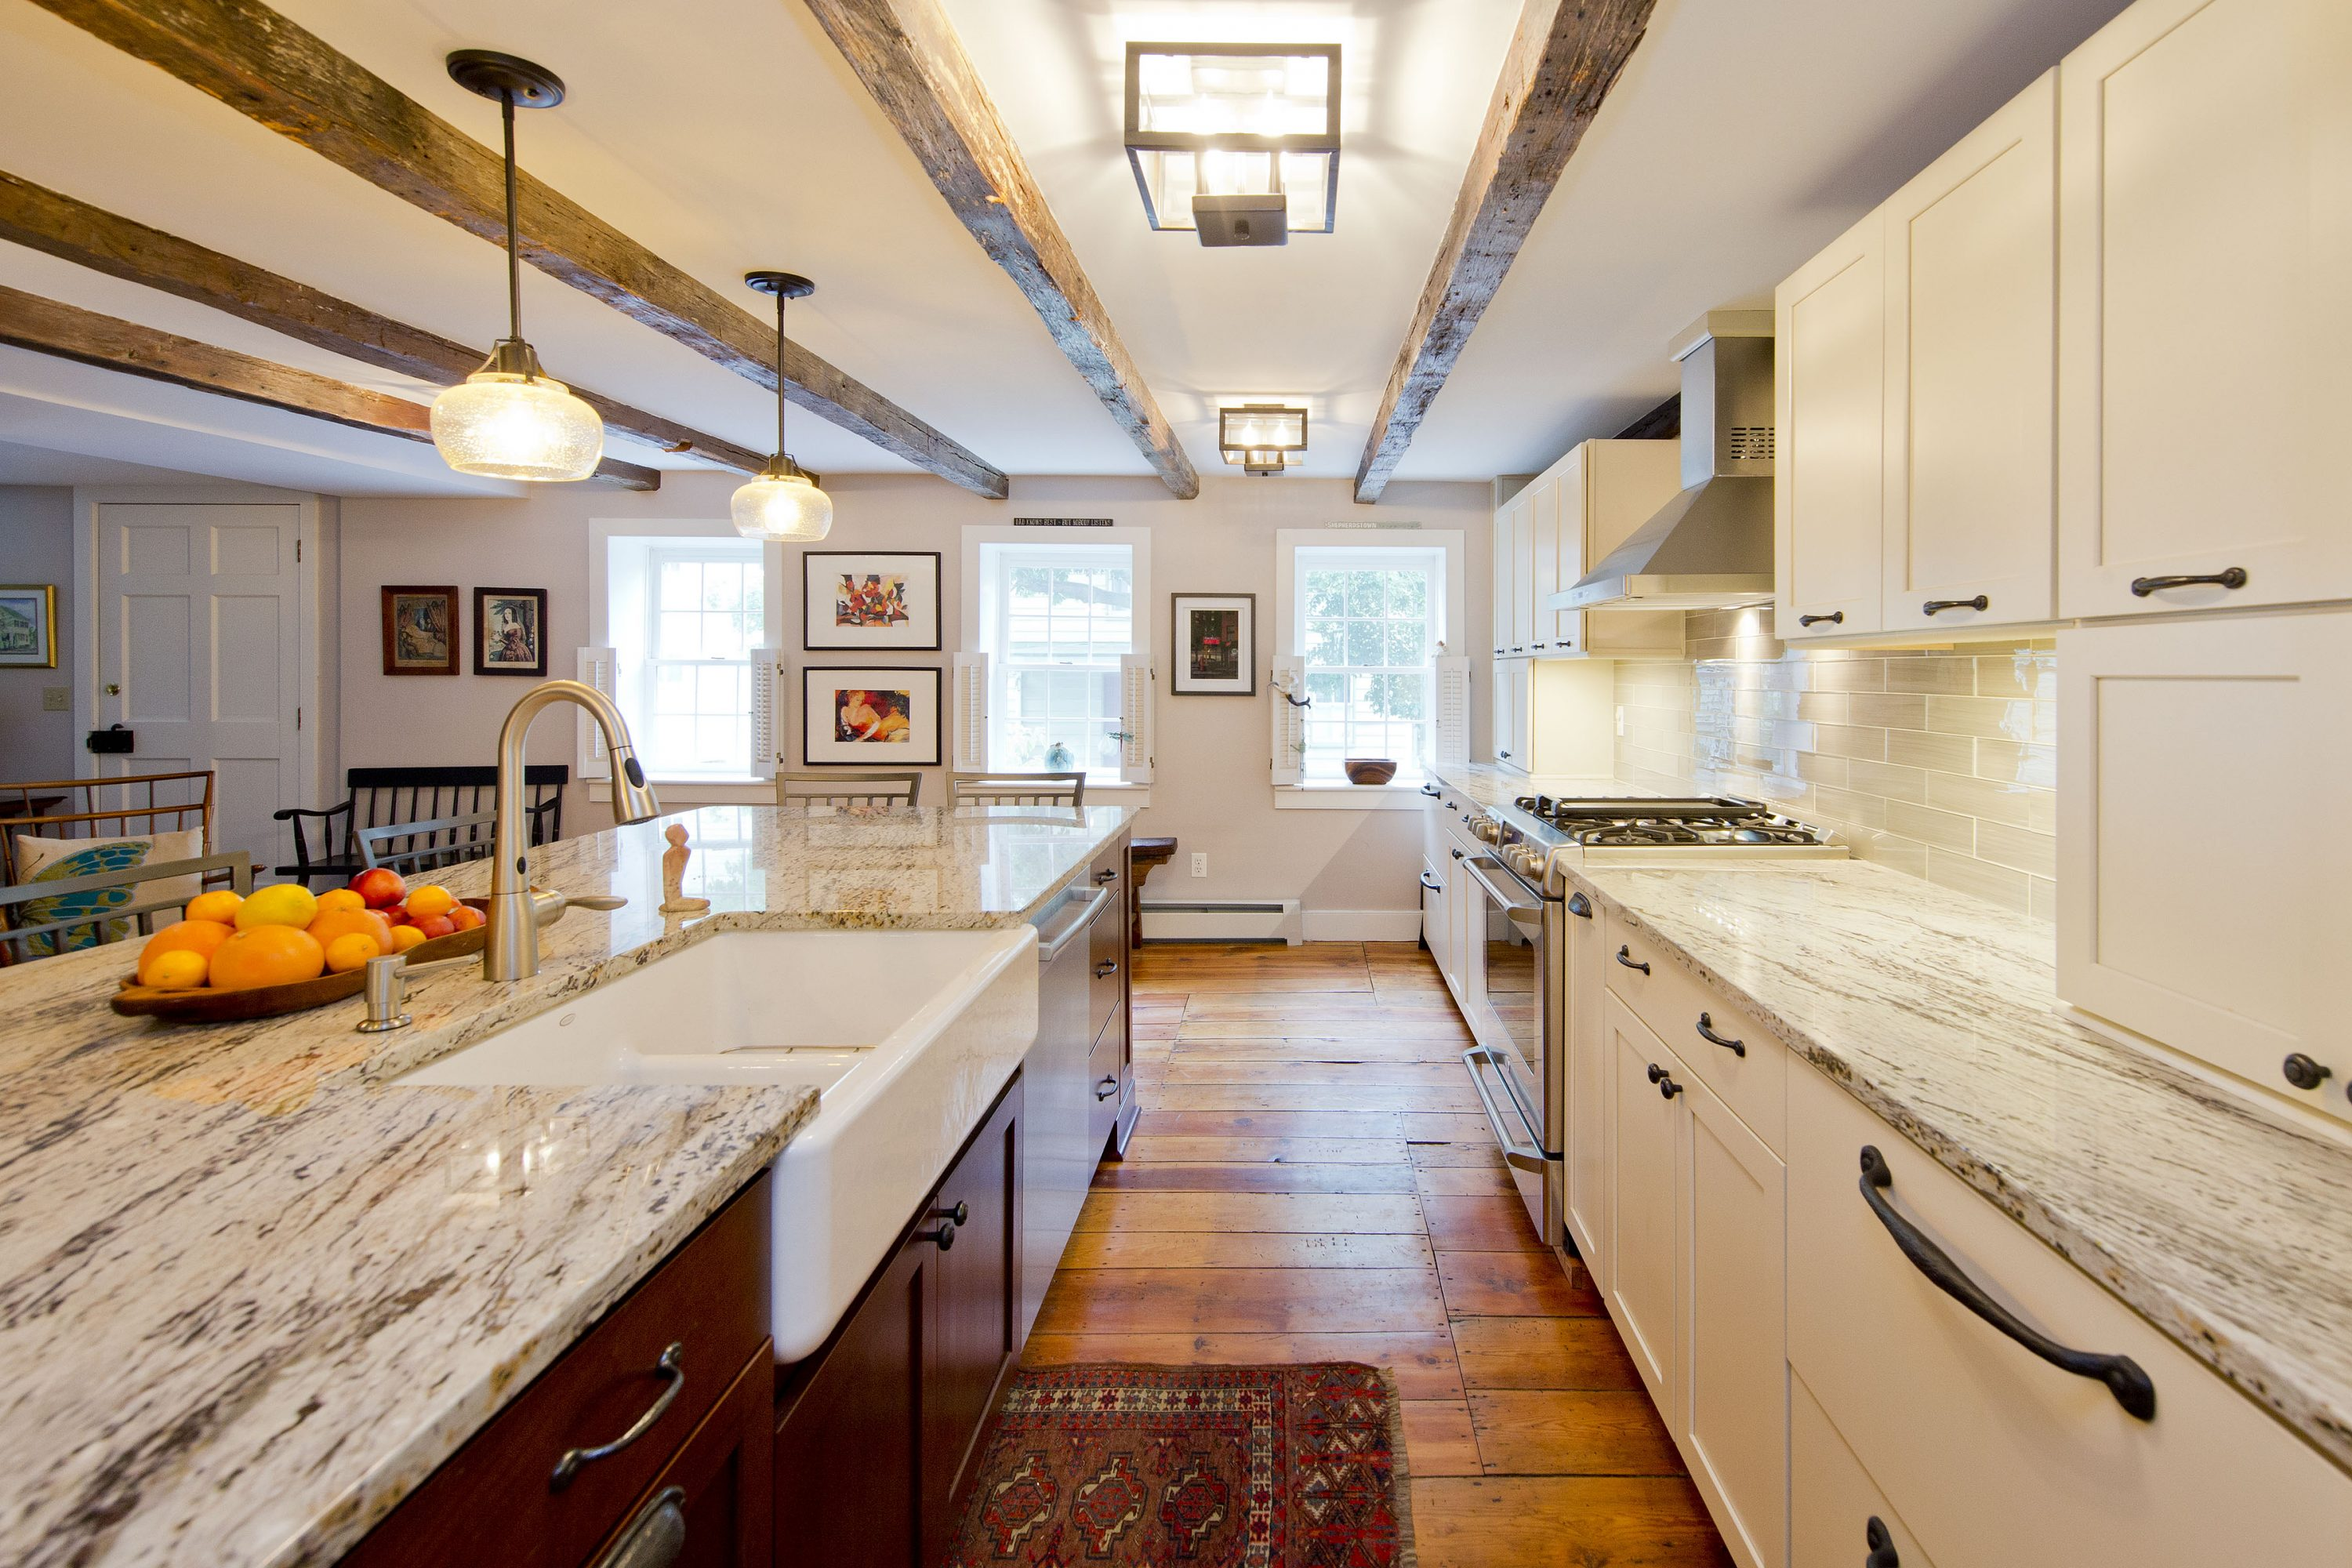 Award Winning Historic Renovation kitchen sink